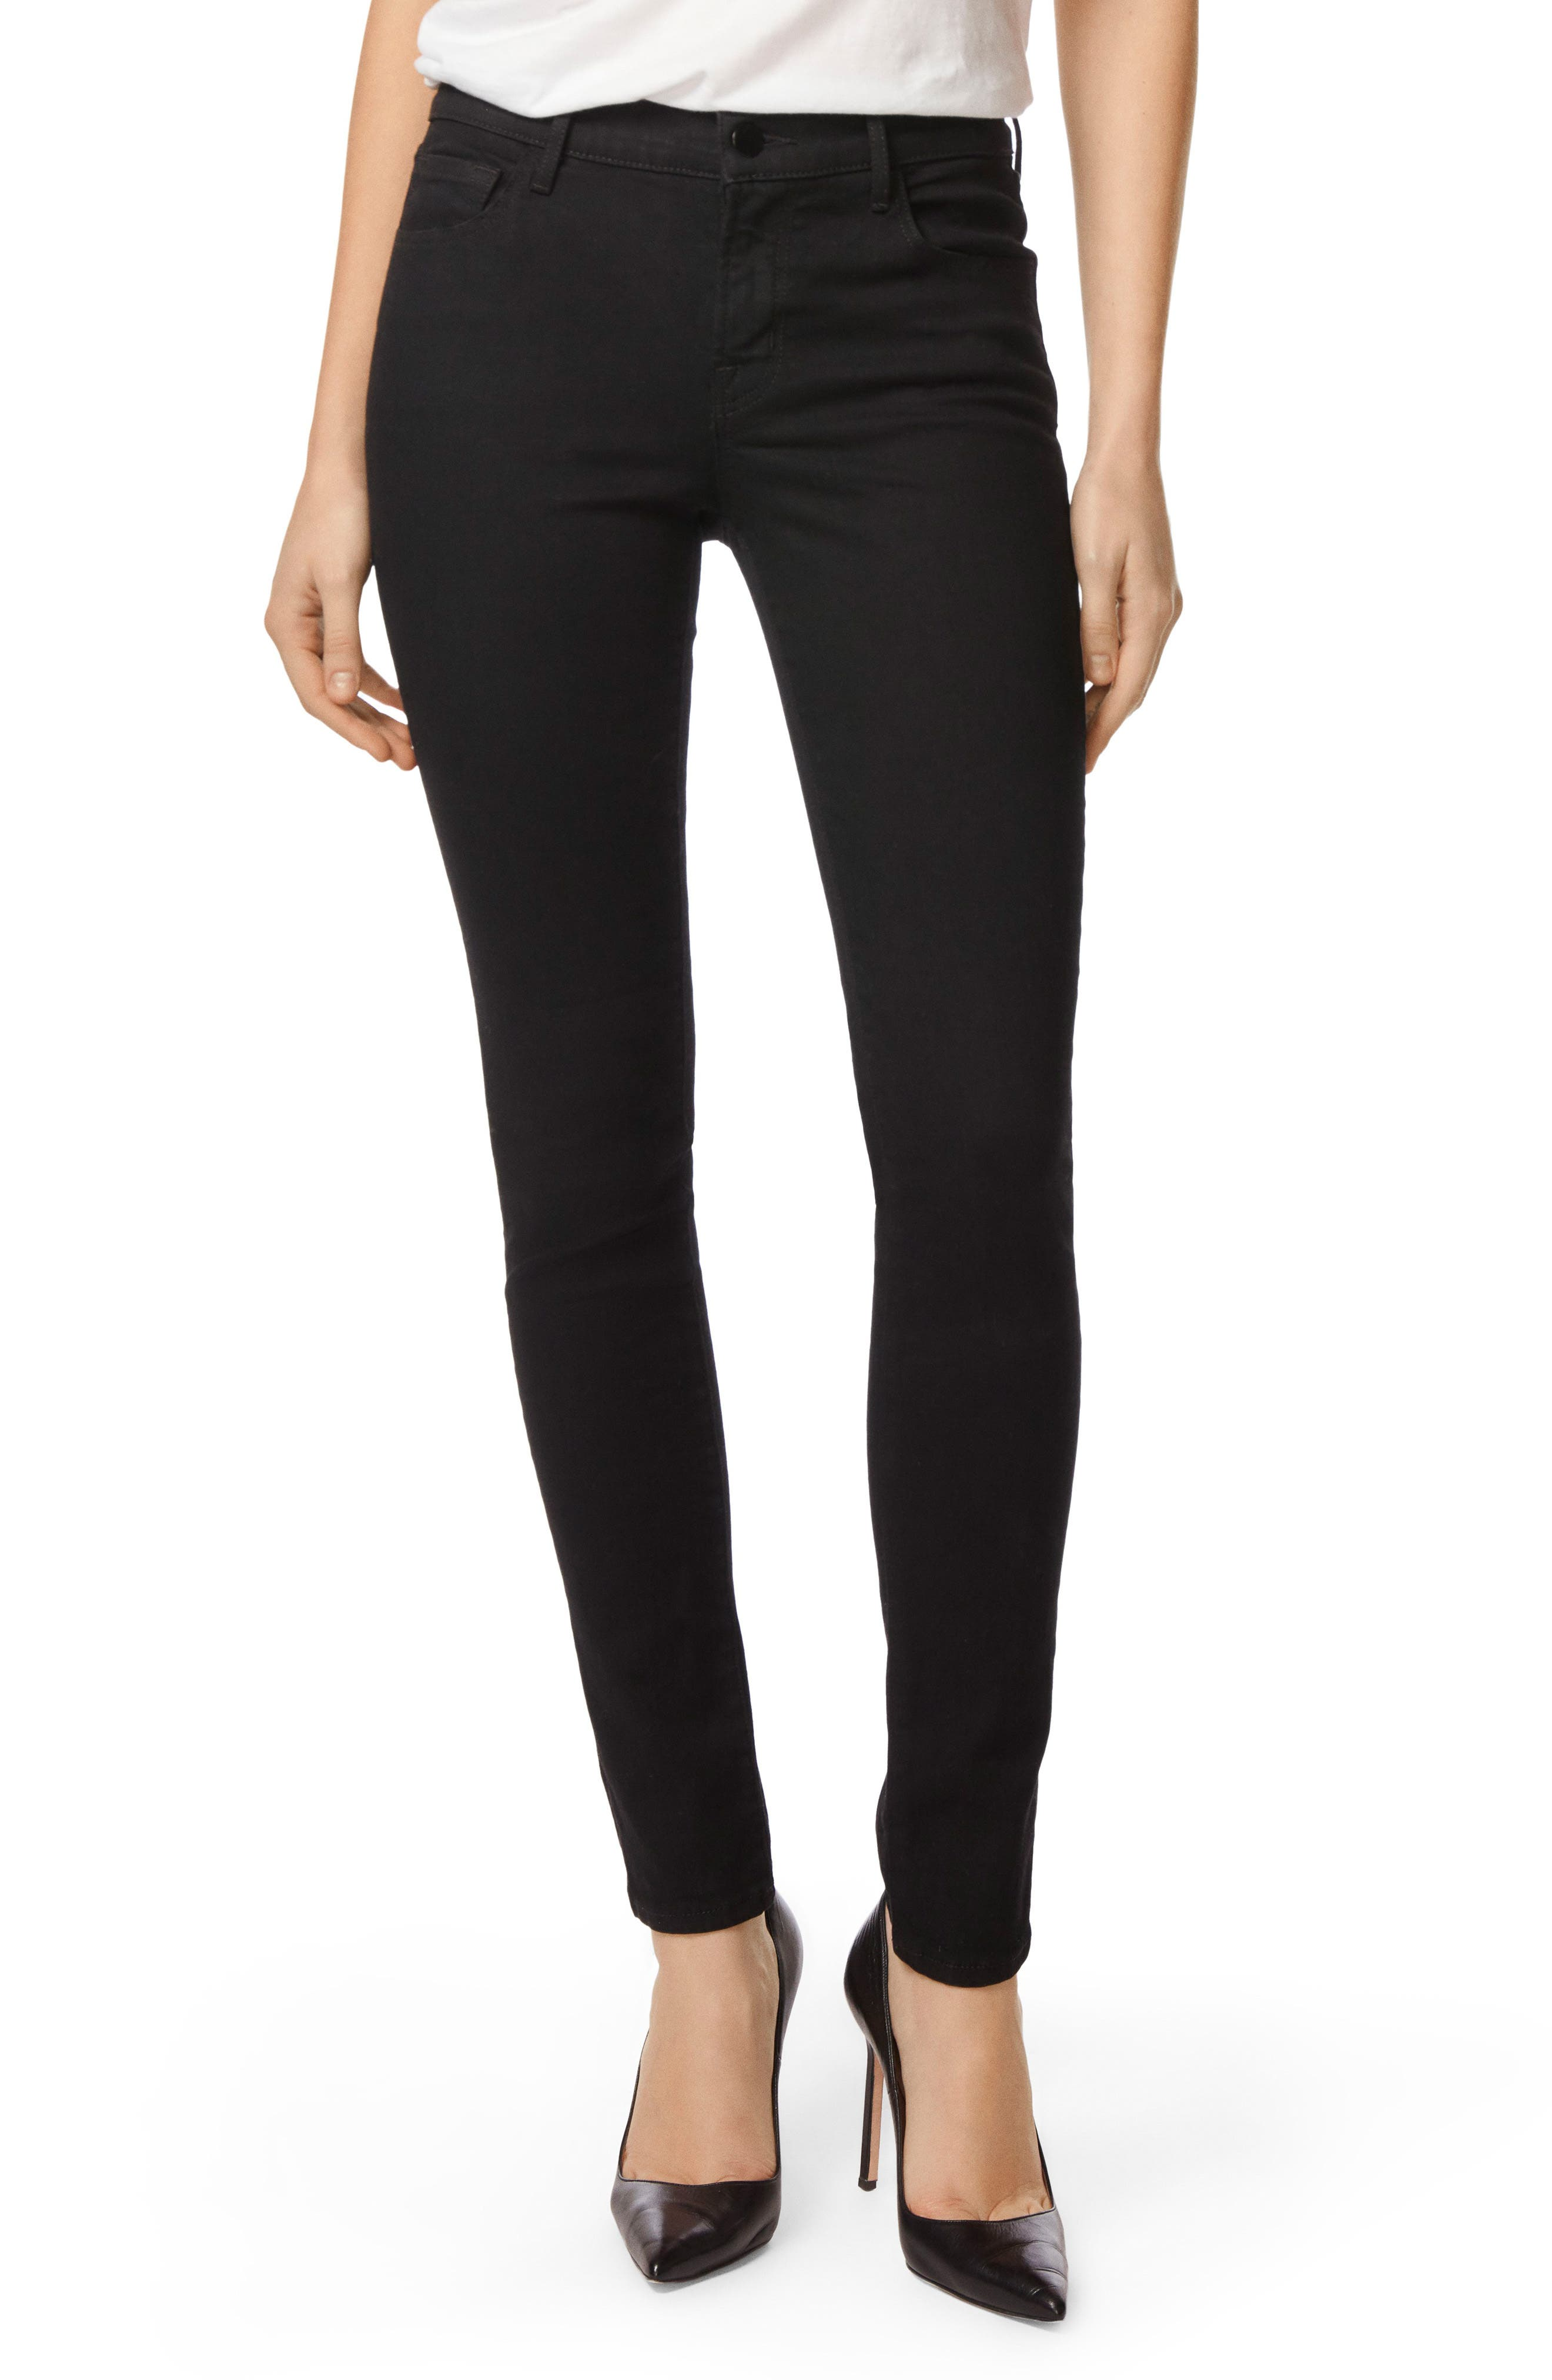 Alternate Image 1 Selected - J Brand '811' Mid Rise Skinny Jeans (Photo Ready Vanity)